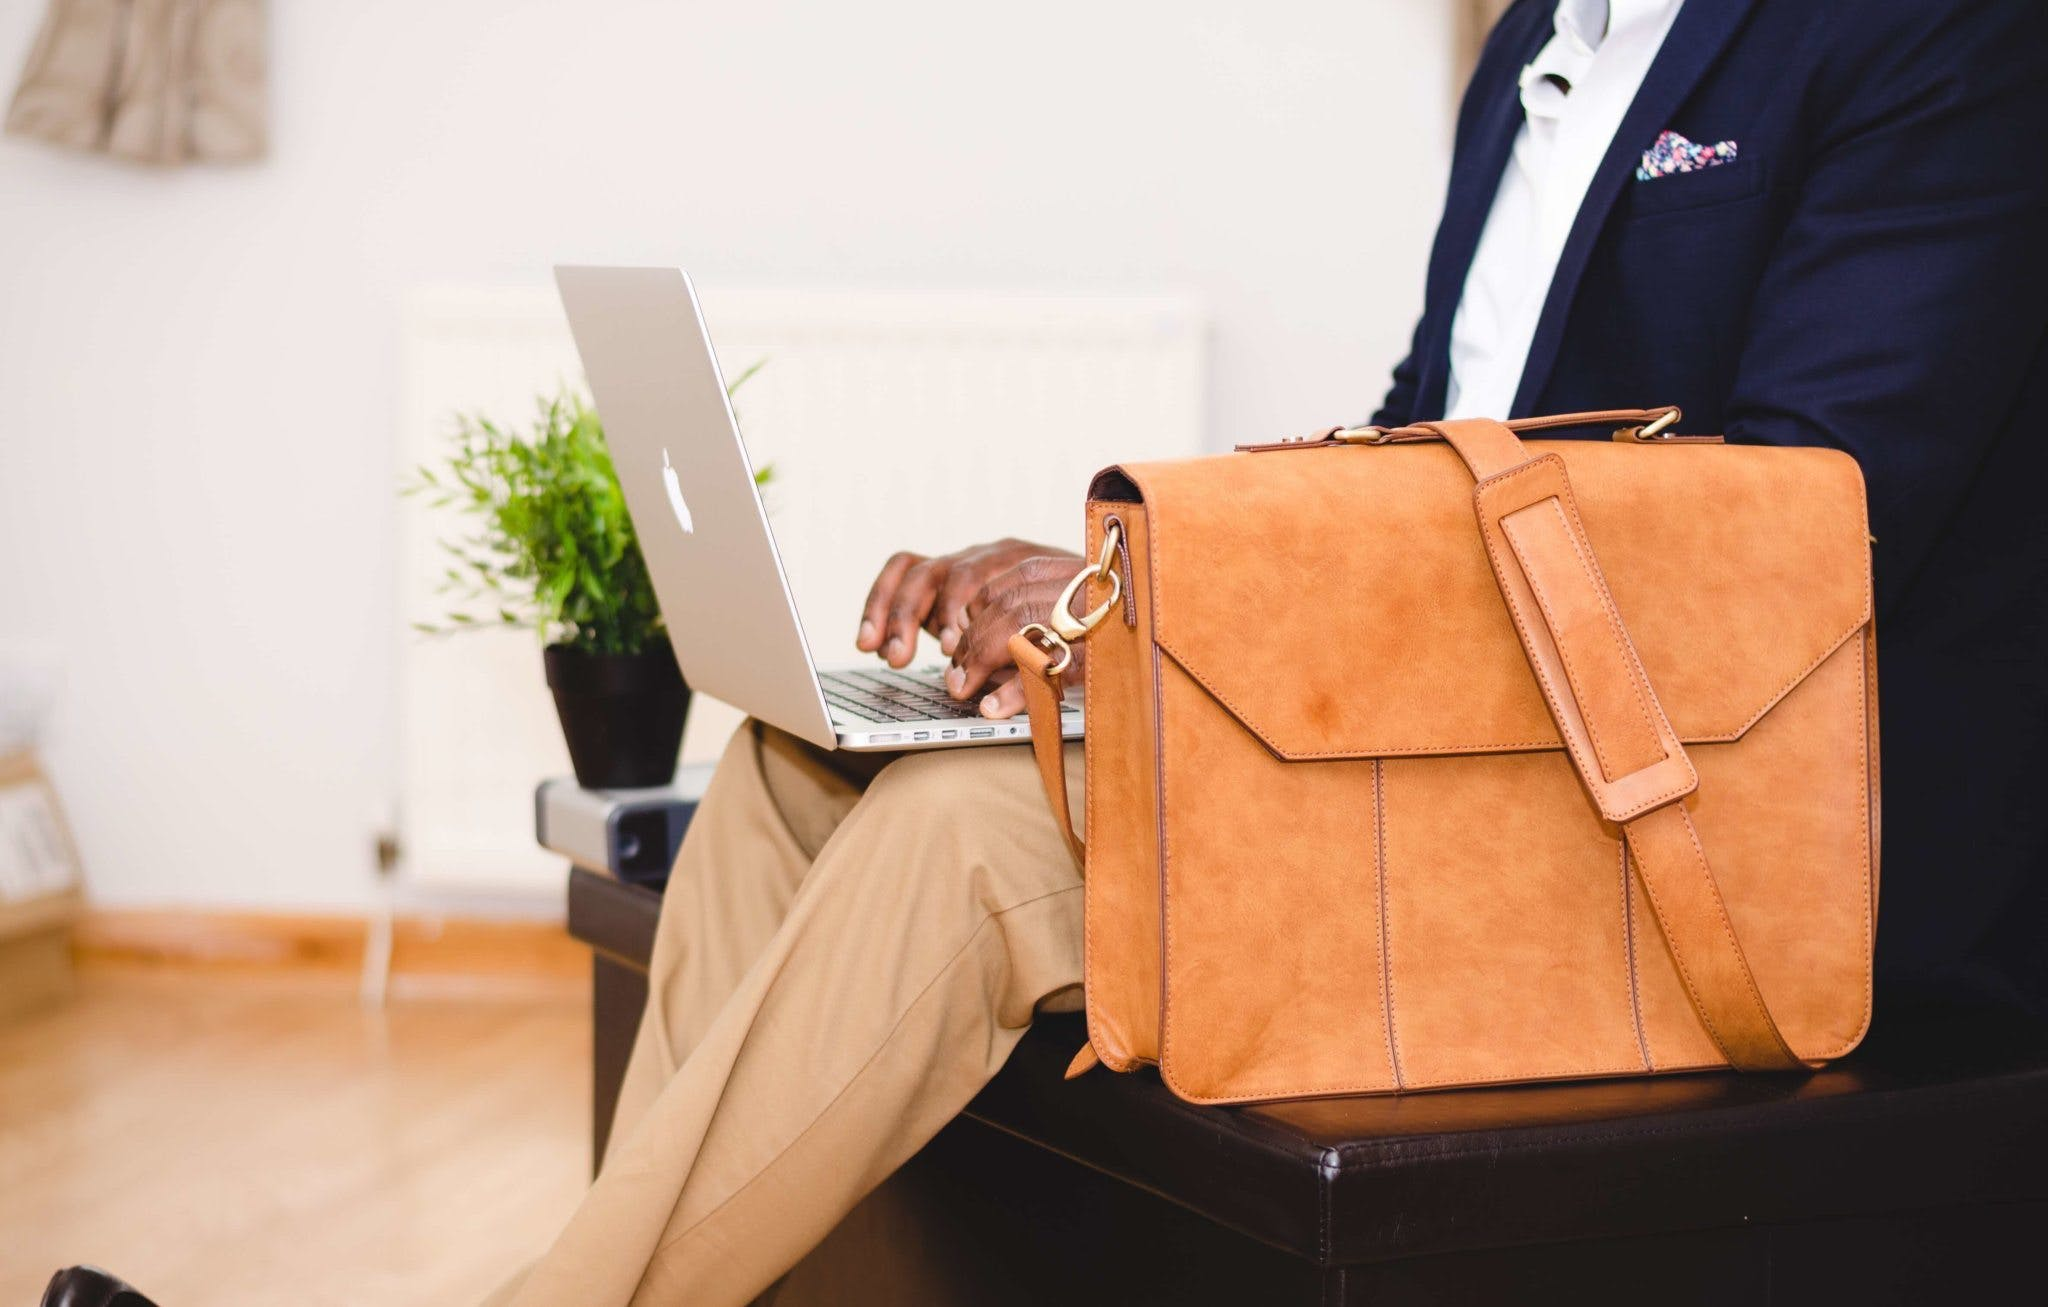 Person Wearing Blue Suit Beside Crossbody Bag and Using Macbook